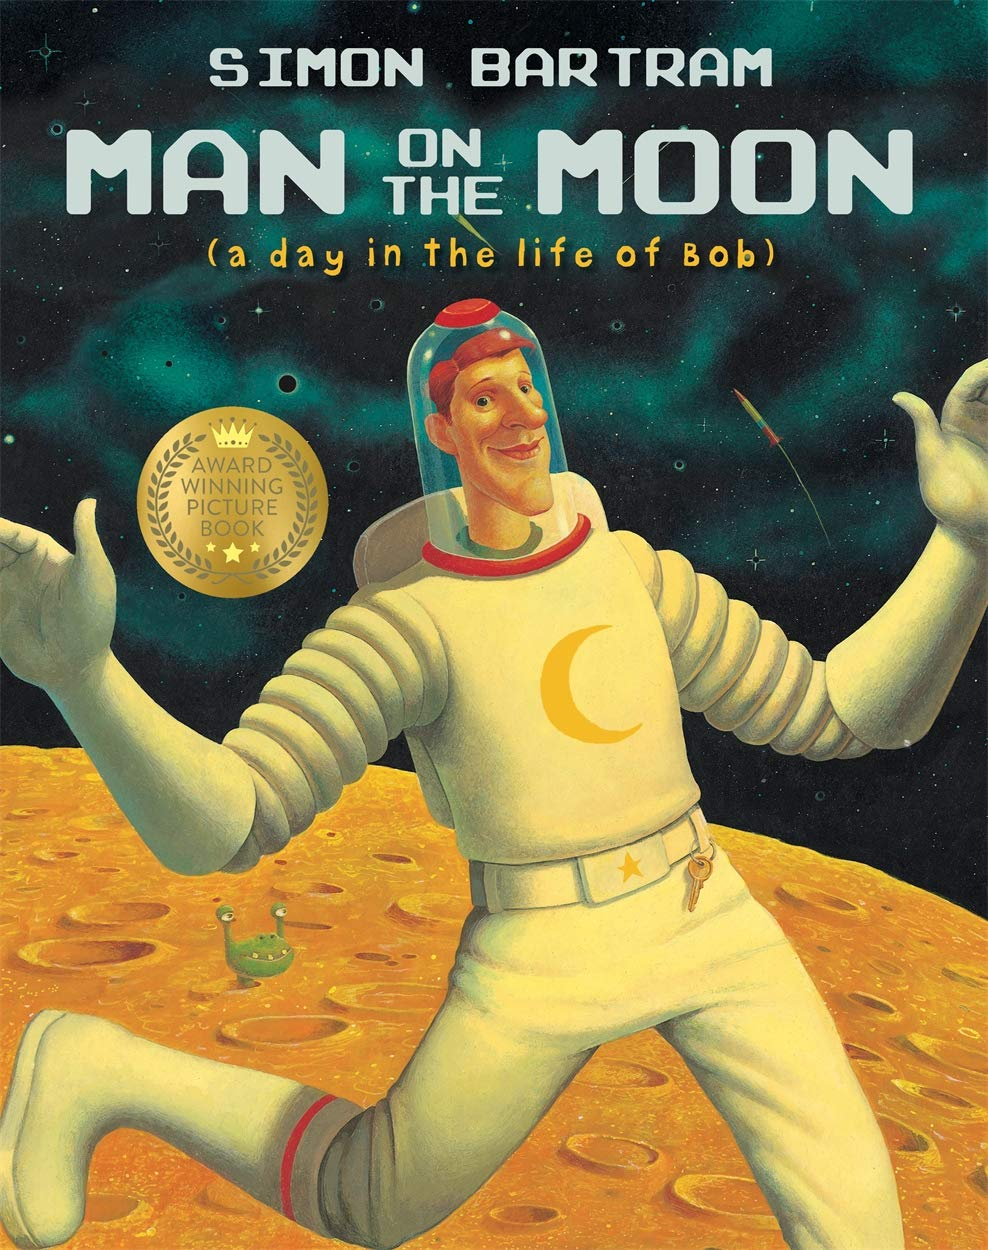 Man on the Moon: a day in the life of Bob (Bartram, Simon Series):  Amazon.co.uk: Bartram, Simon, Bartram, Simon: 9781840114911: Books